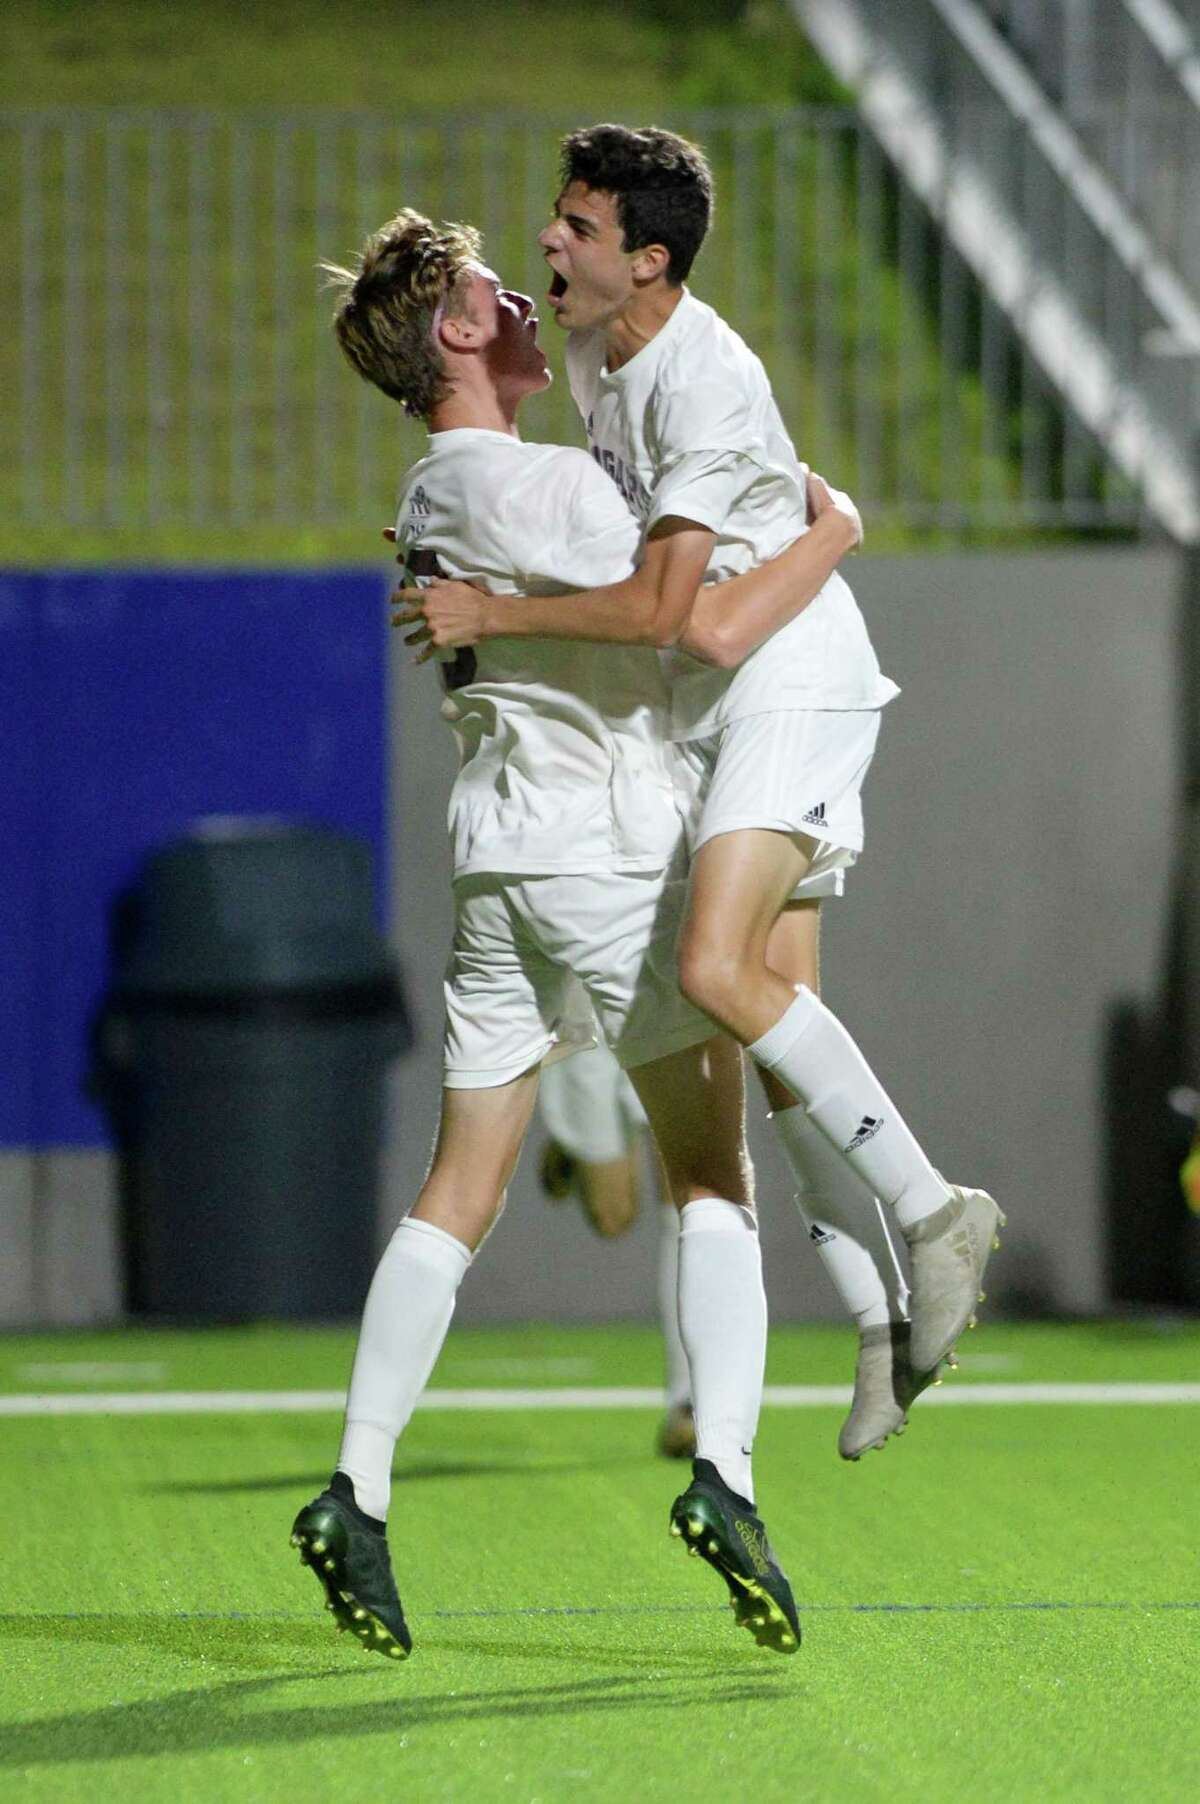 Defender Joe Burt (6) and Forward Daniel Garay (11) of Cinco Ranch react after Burt's goal during the second half of a 6A-III area round soccer playoff between the Cinco Ranch Cougars and the Cy Lakes Spartans on Tuesday, April 3, 2018 at Legacy Stadium, Katy, TX.